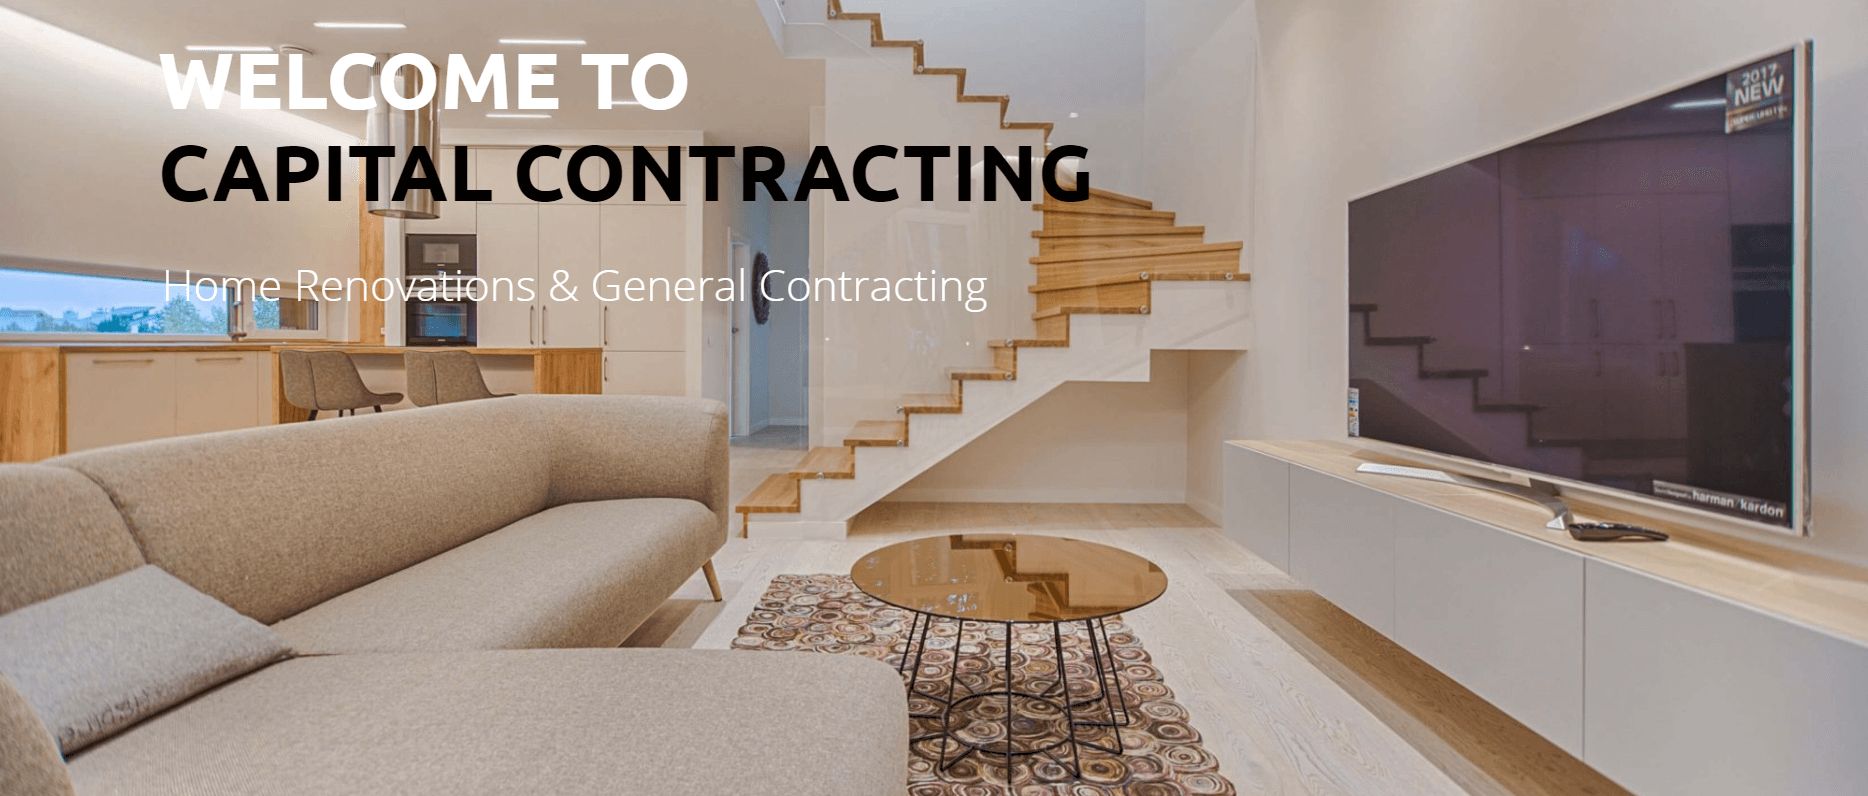 Capital Contracting Home Renovations